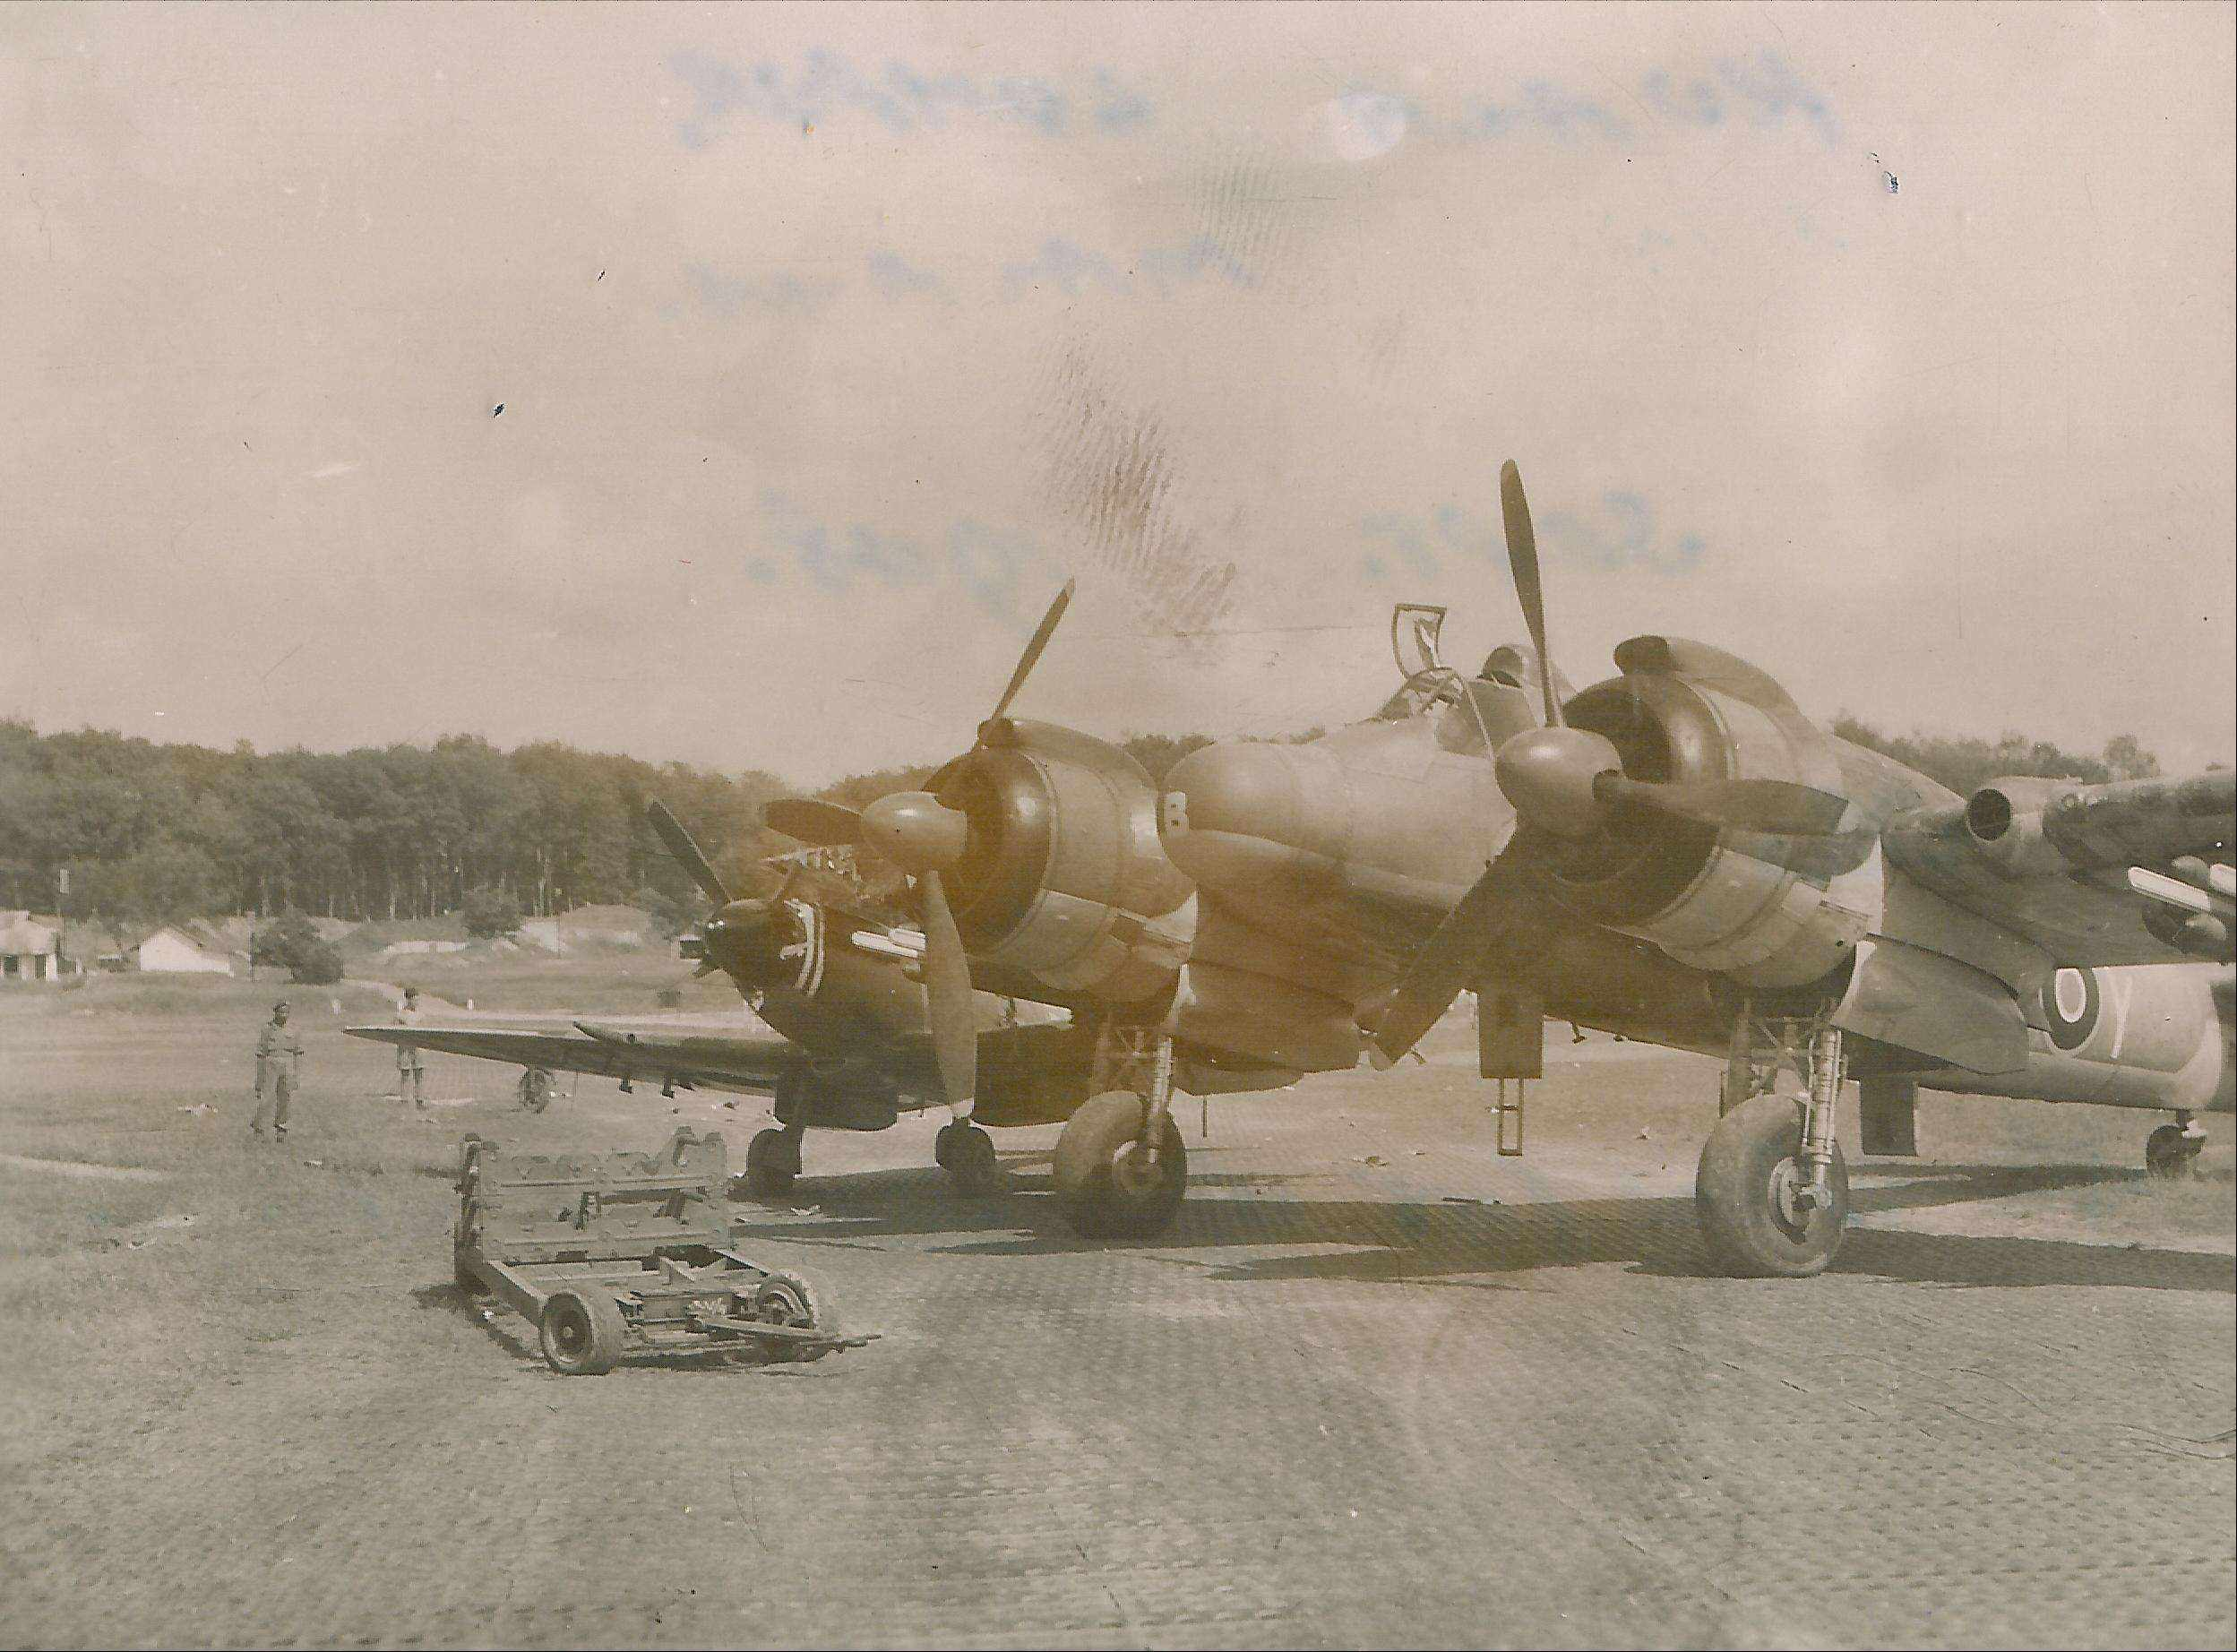 Spitfire XVIII RAF 60Sqn TP222 and Beaufighter RD863 prop strike accident 03